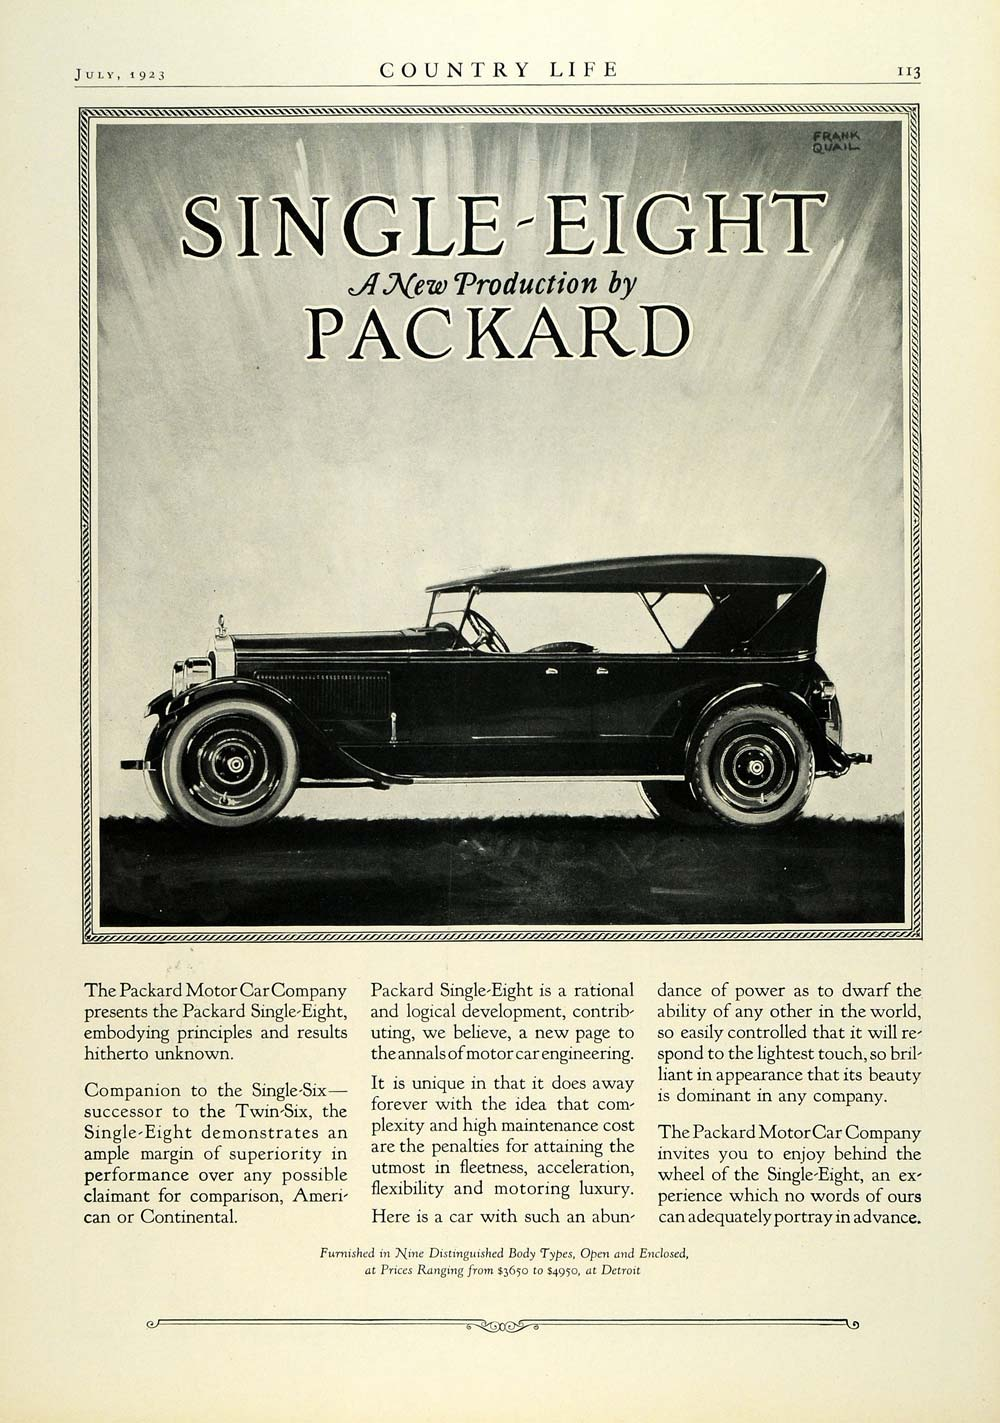 1923 Ad Packard Motor Car Co Single-Eight Automobile Vintage Car Frank COL3